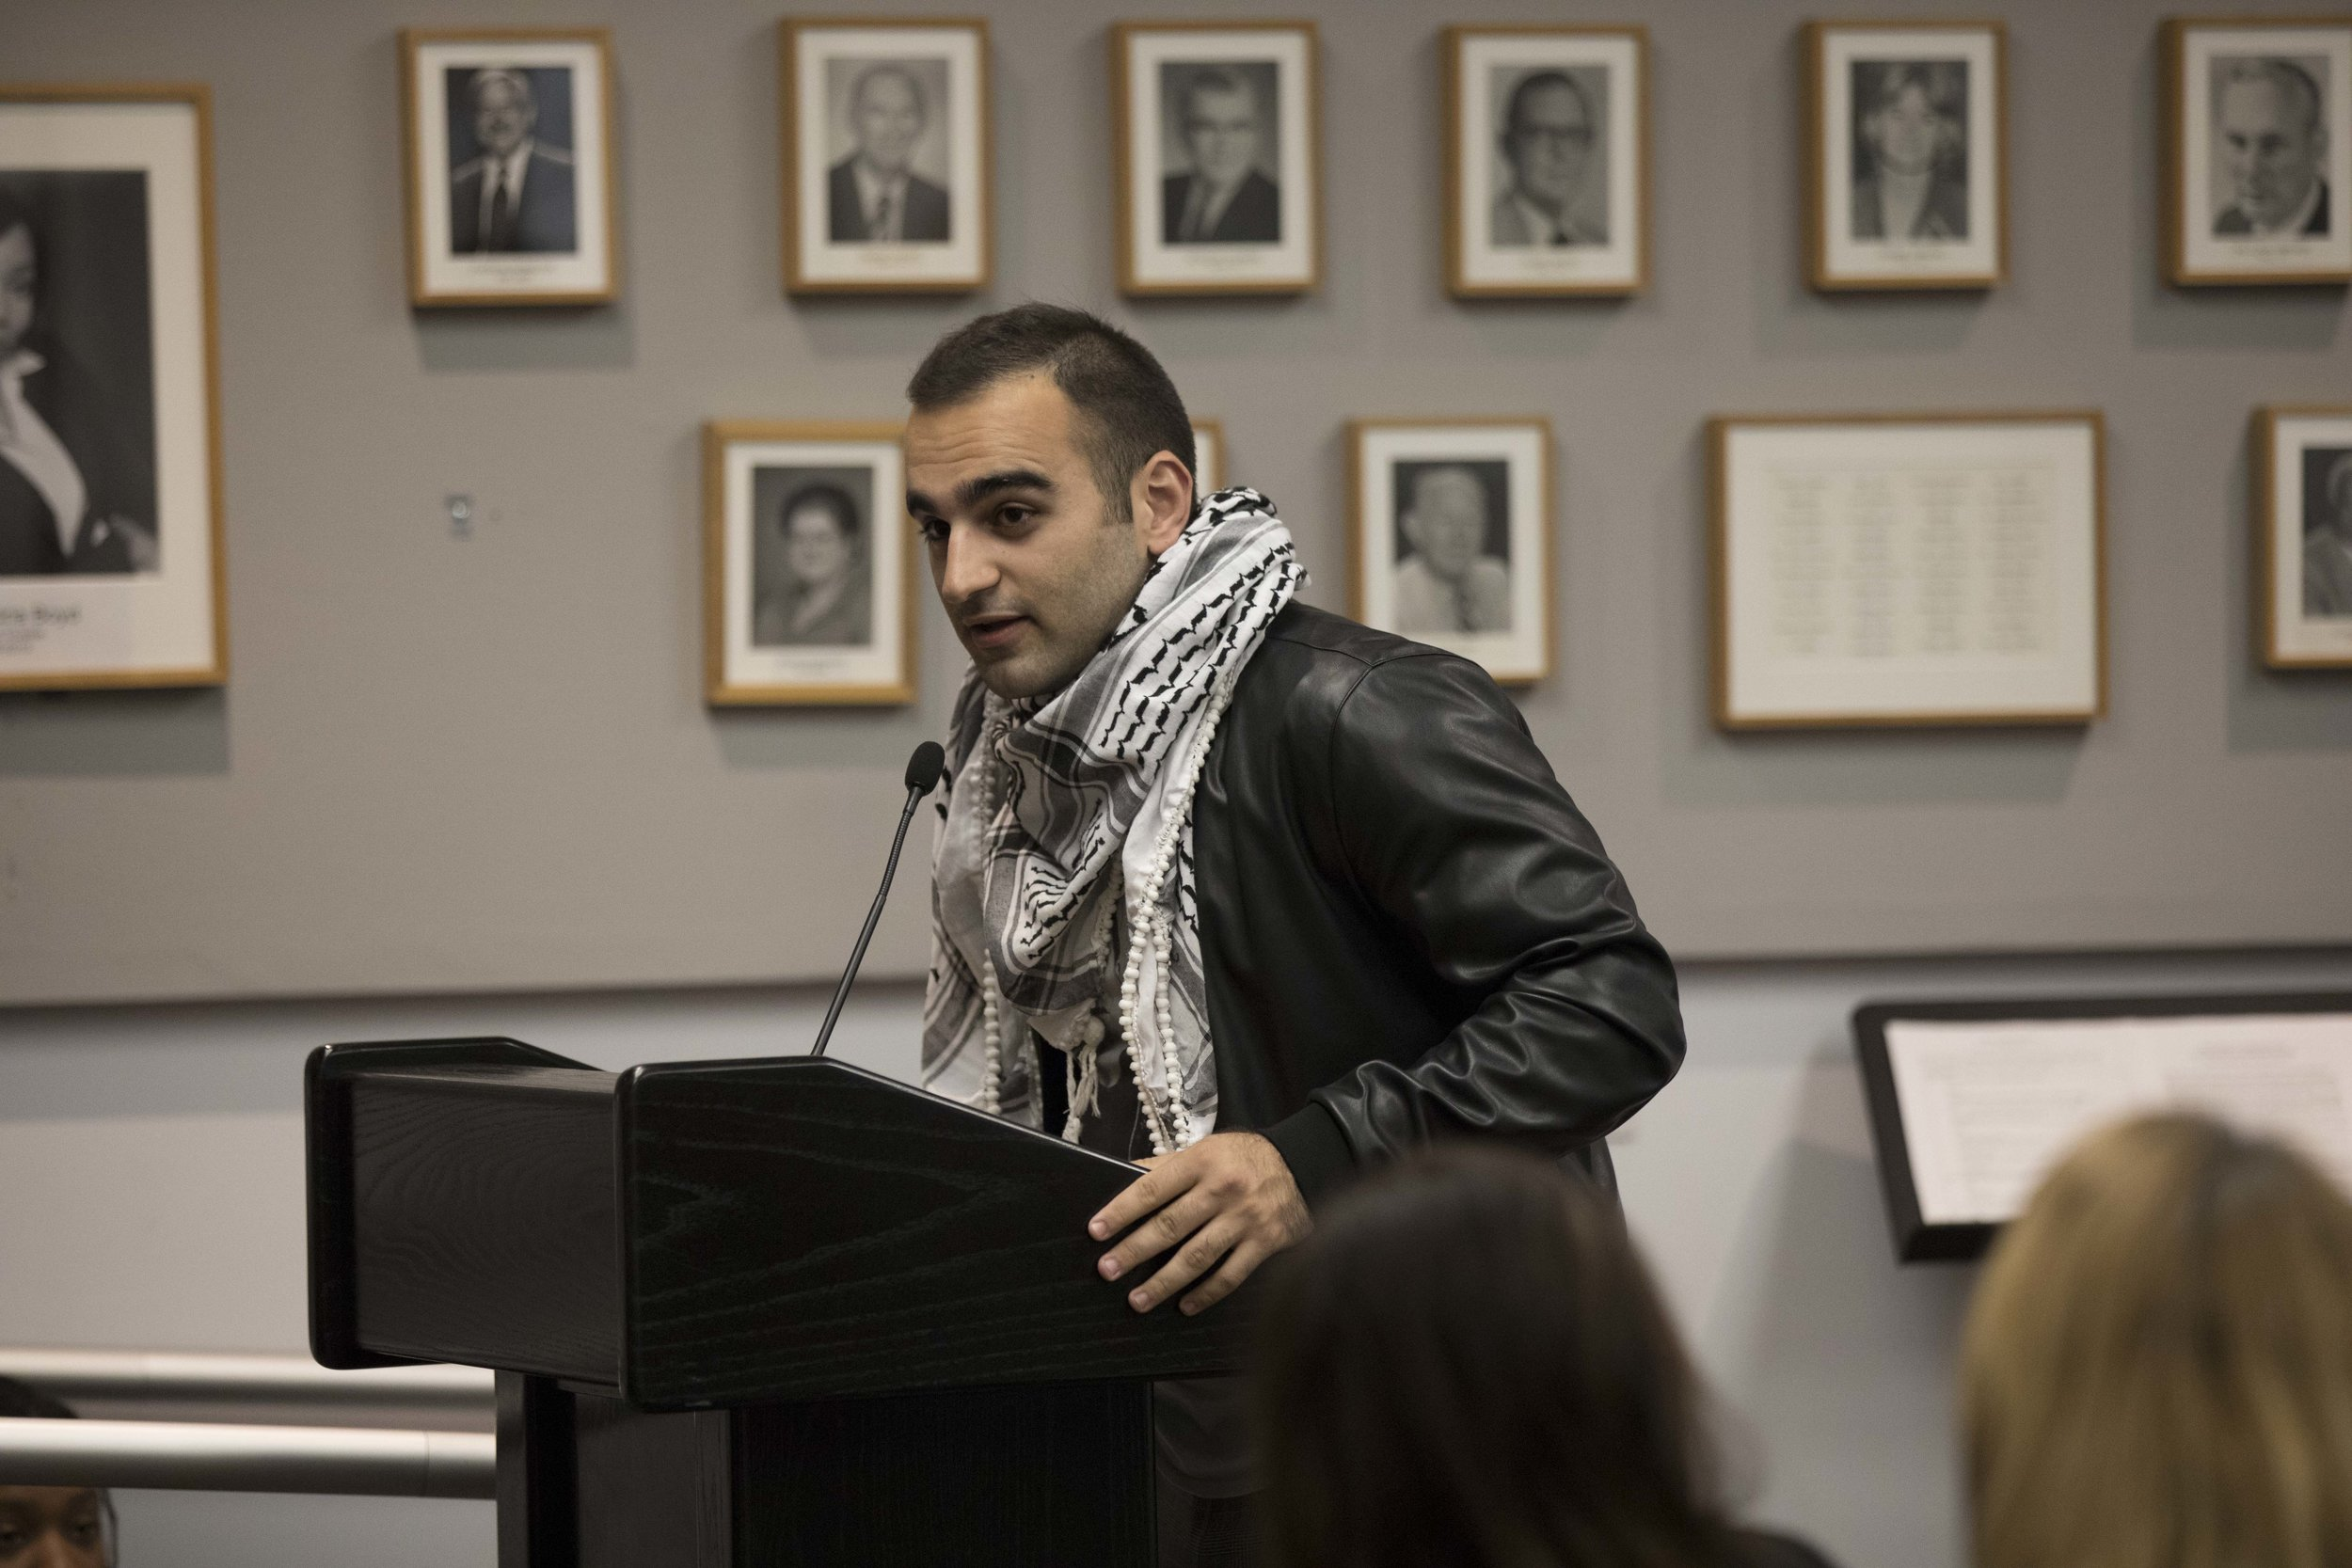 Santa Monica College student Hesham Jarmakani at the Board of Trustees Meeting at Santa Monica College in Santa Monica, California on Tuesday April 2, 2019. Photographer (Tanya Barcessat / The Corsair)